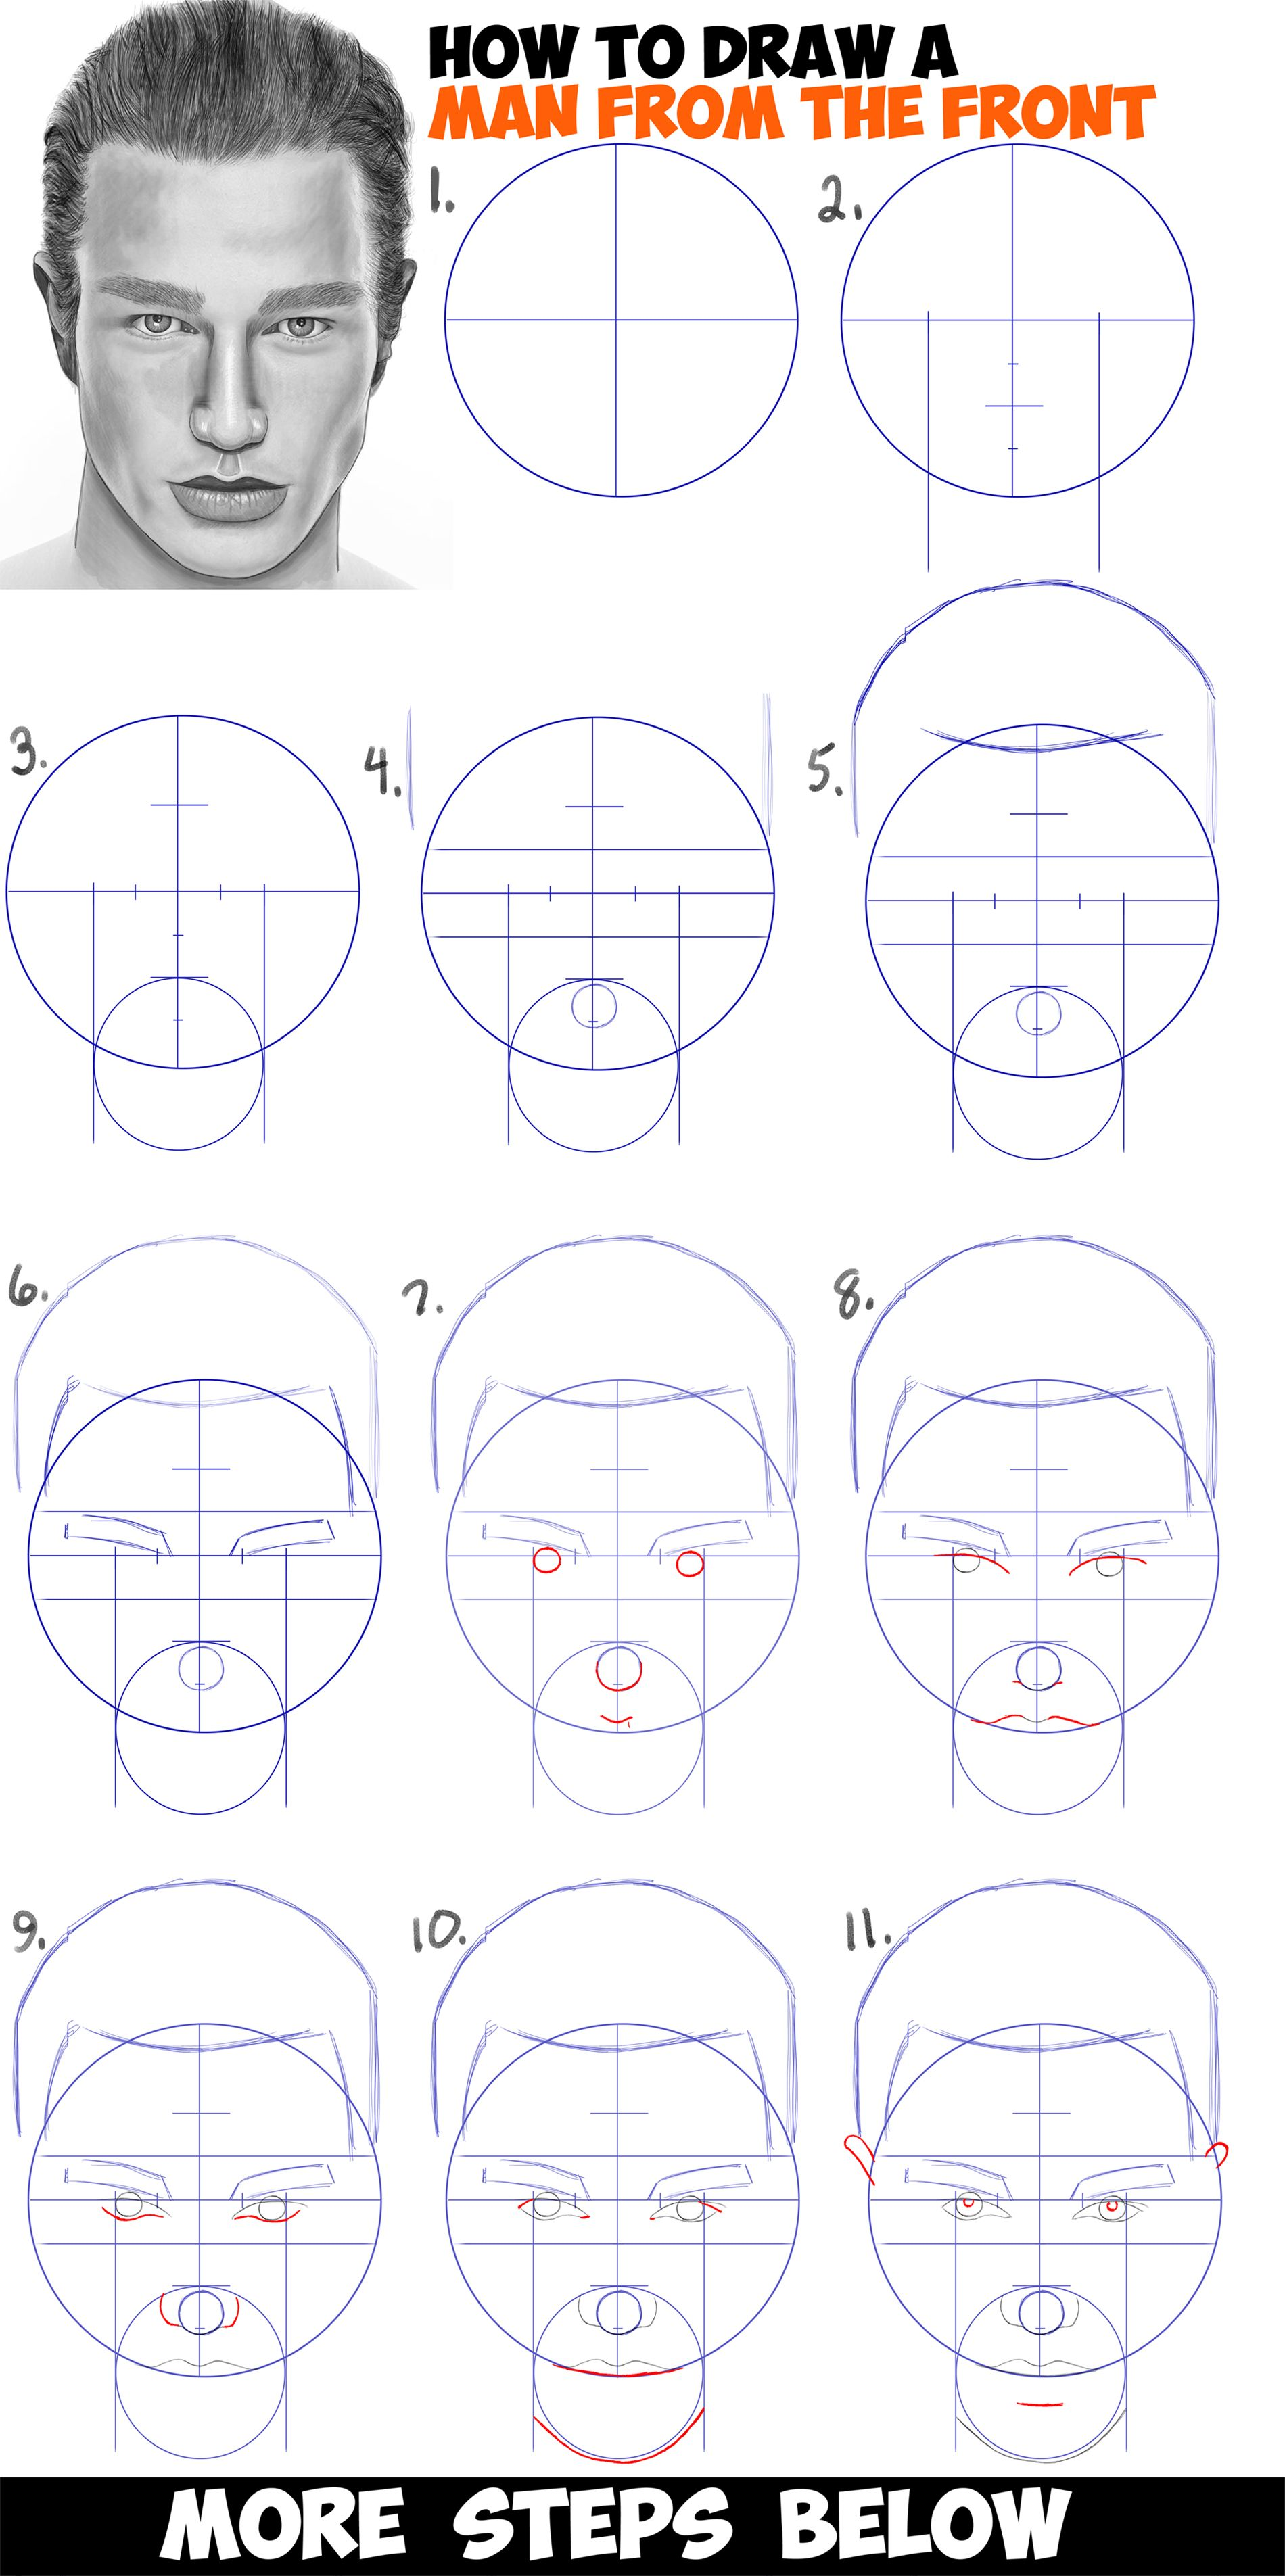 How To Draw A Man S Face From The Front View Male Easy Step By Step Drawing Tutorial For Beginners How To Draw Step By Step Drawing Tutorials Drawing Tutorials For